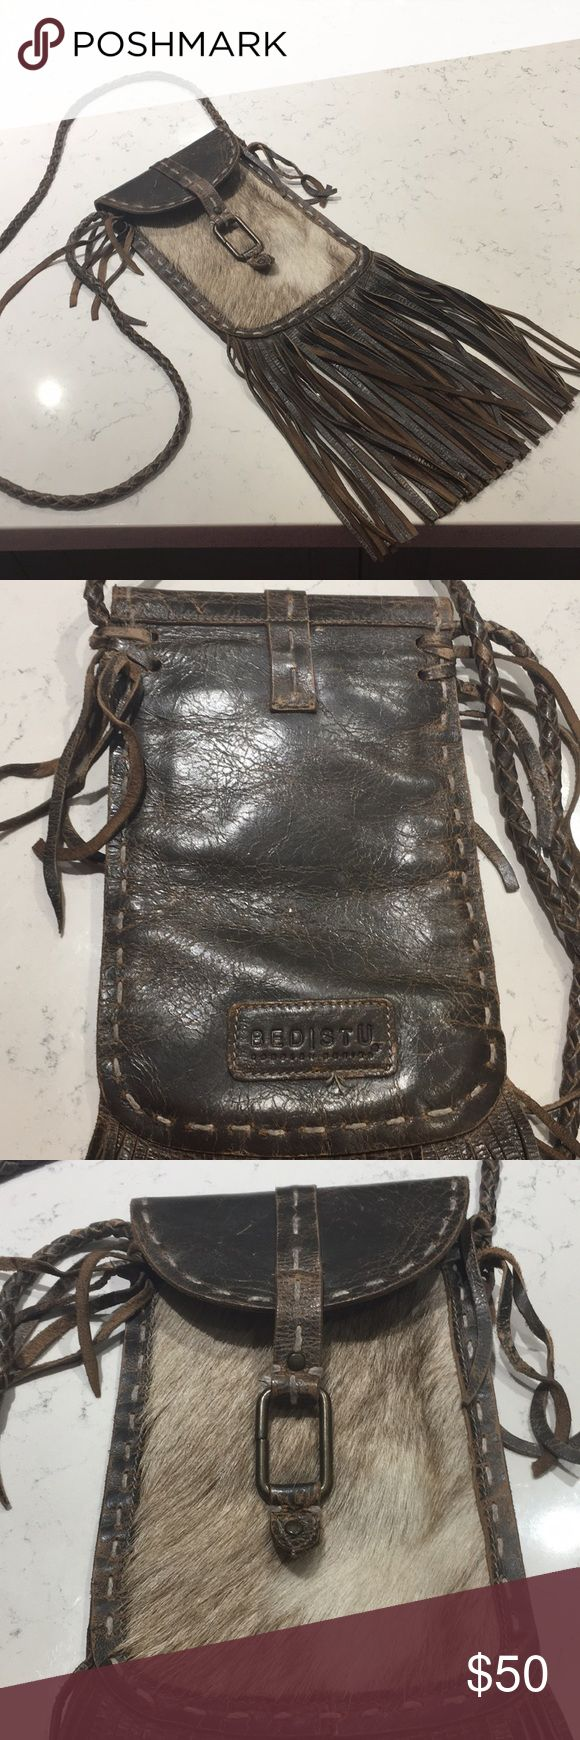 Bed Stu Cowhide Fringe Crossbody Super cute! Great for festivals or even coachella. Inside is tight. Can only fit phone, keys, and cards. Has a zip pocket and card pocket inside. Not an adjustable strap. Hangs down to mid-thing. REAL leather and cowhide Bed Stu Bags Crossbody Bags